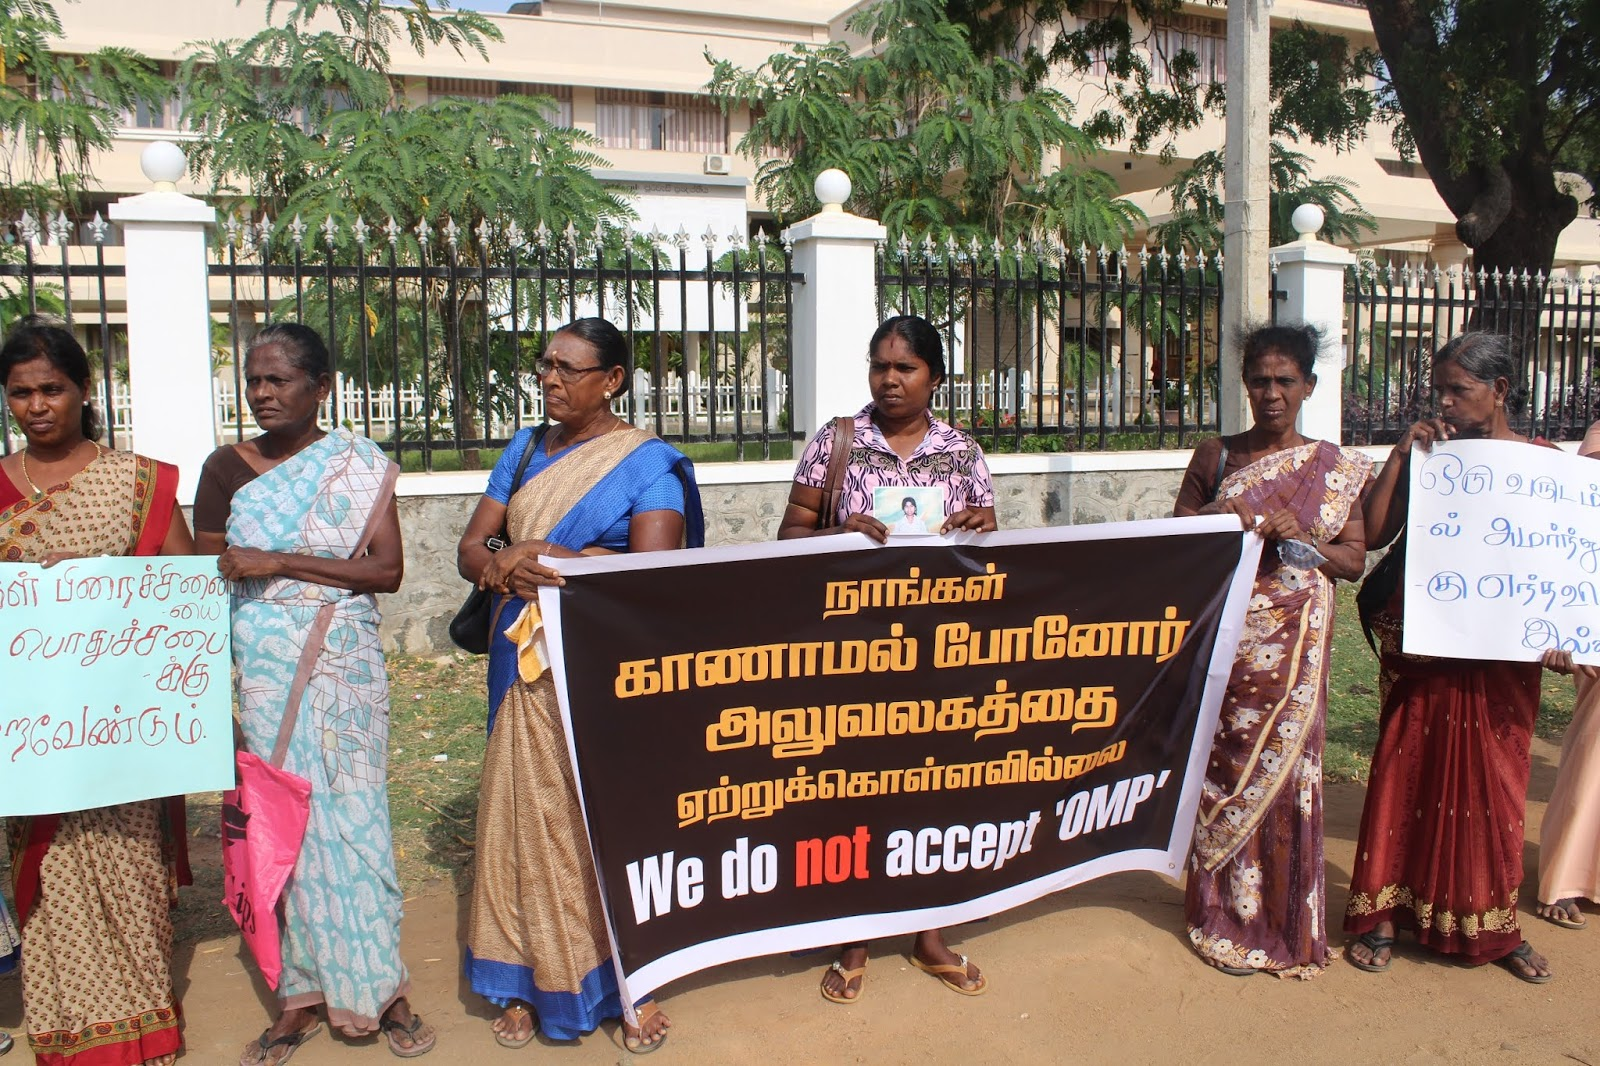 Relatives of Missing meet Governor Ragavan and hand over memorandum for Geneva